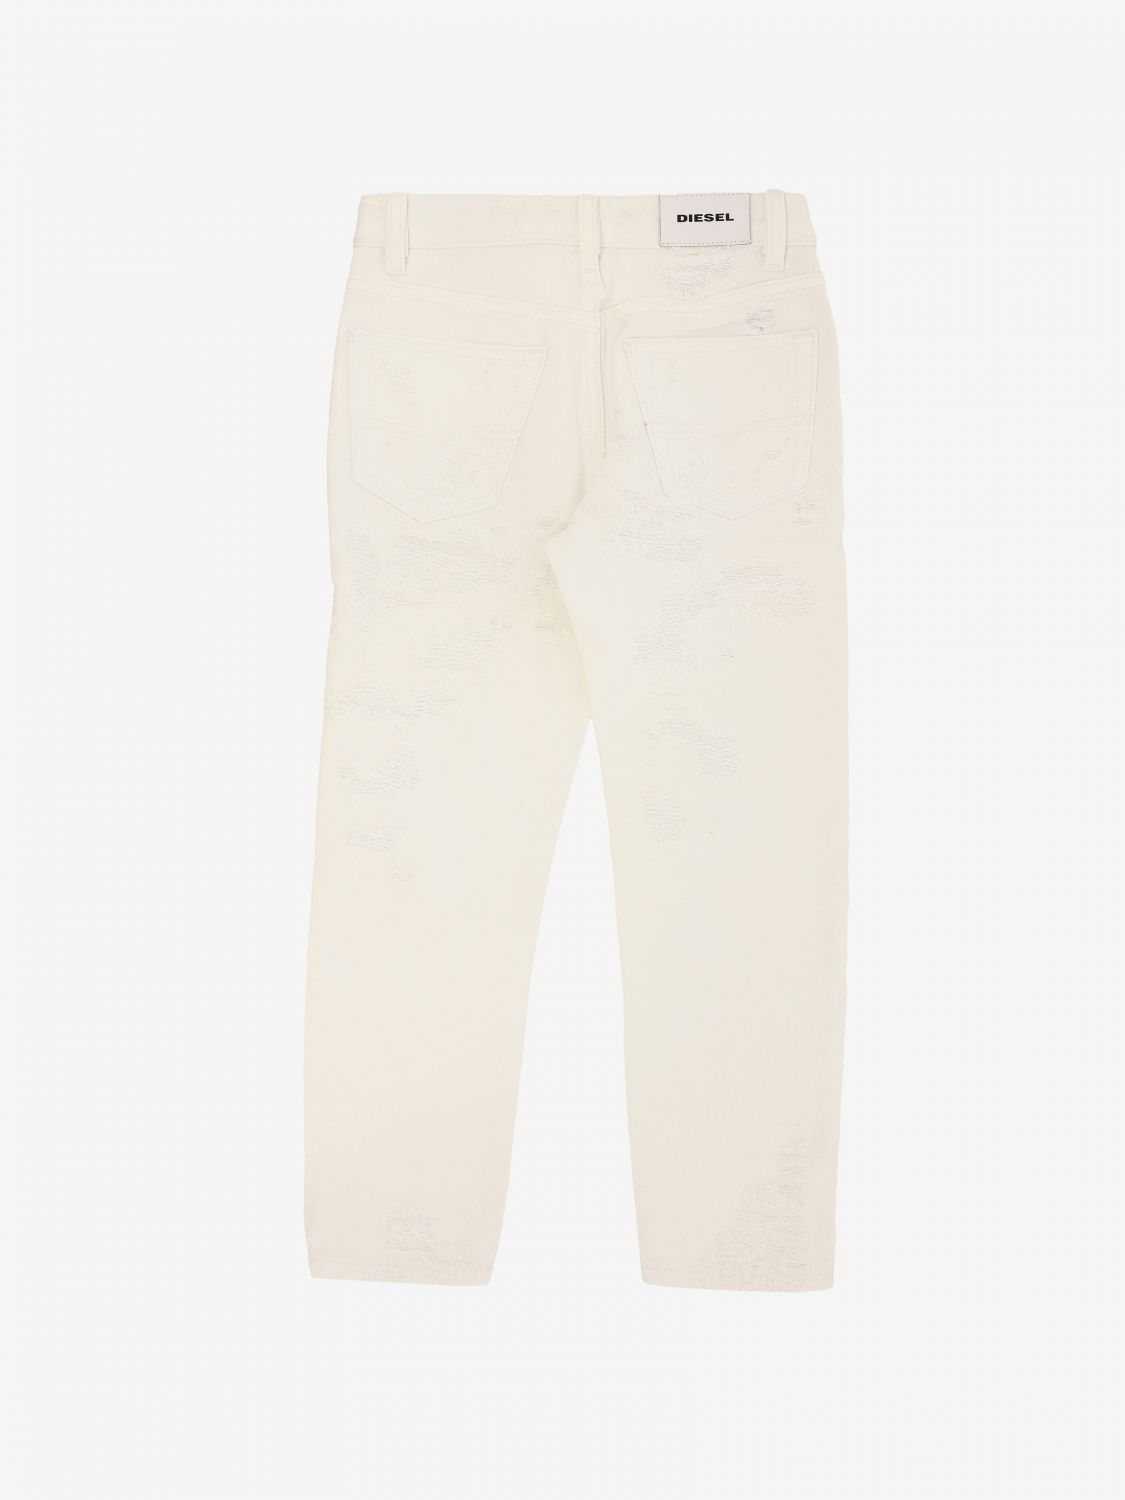 Diesel trousers with 5 pockets white 2